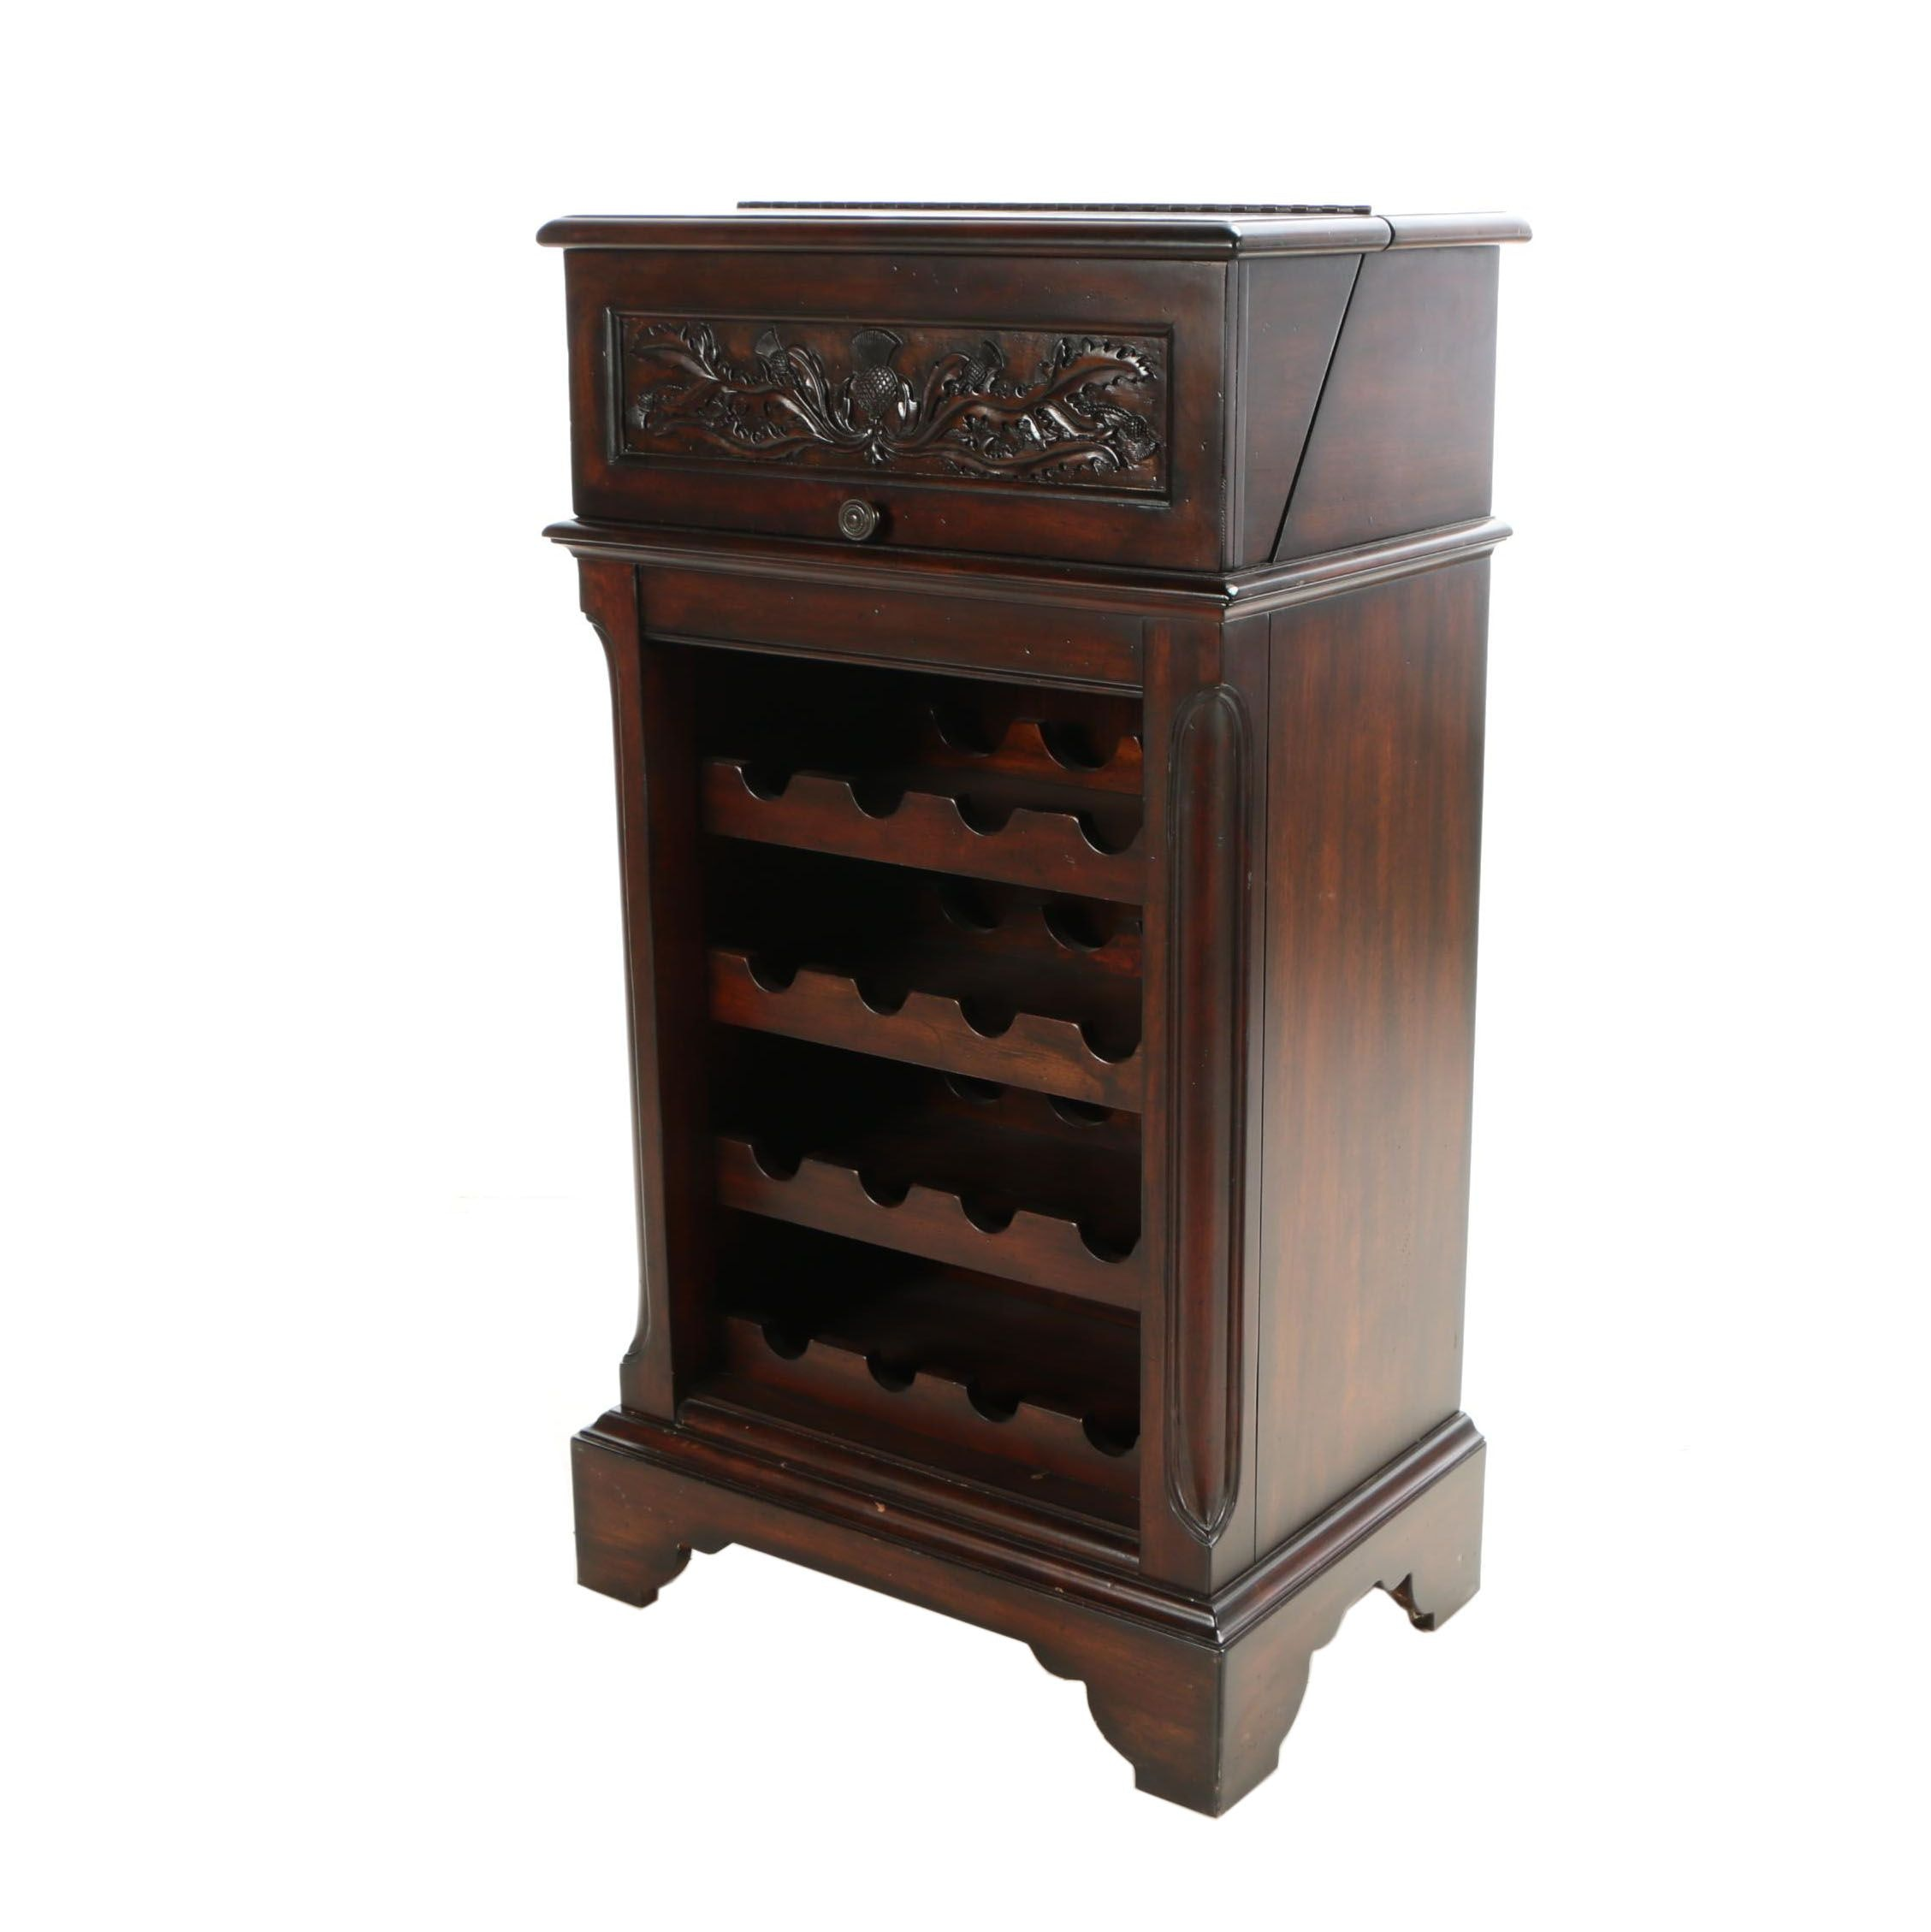 Contemporary Walnut-Stained Wine Cabinet